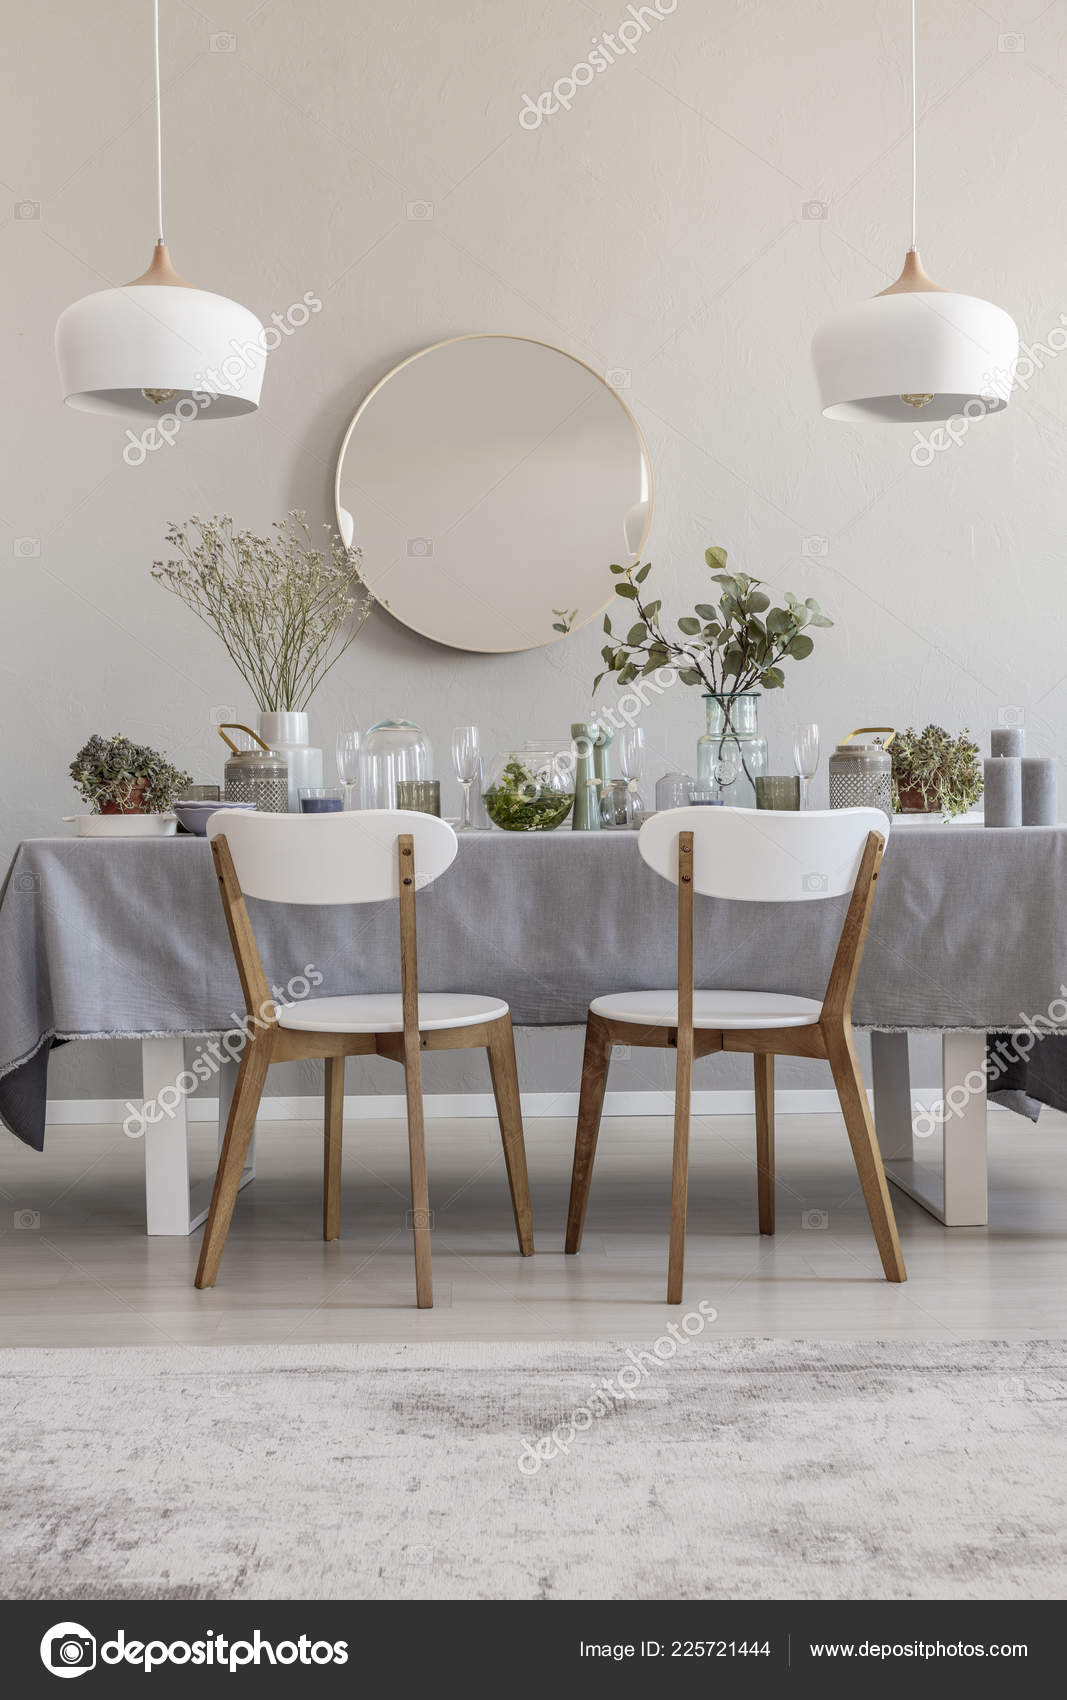 White Chairs Table Elegant Dining Room Interior Mirror Lamps Real Stock Photo Image By Photographee Eu 225721444